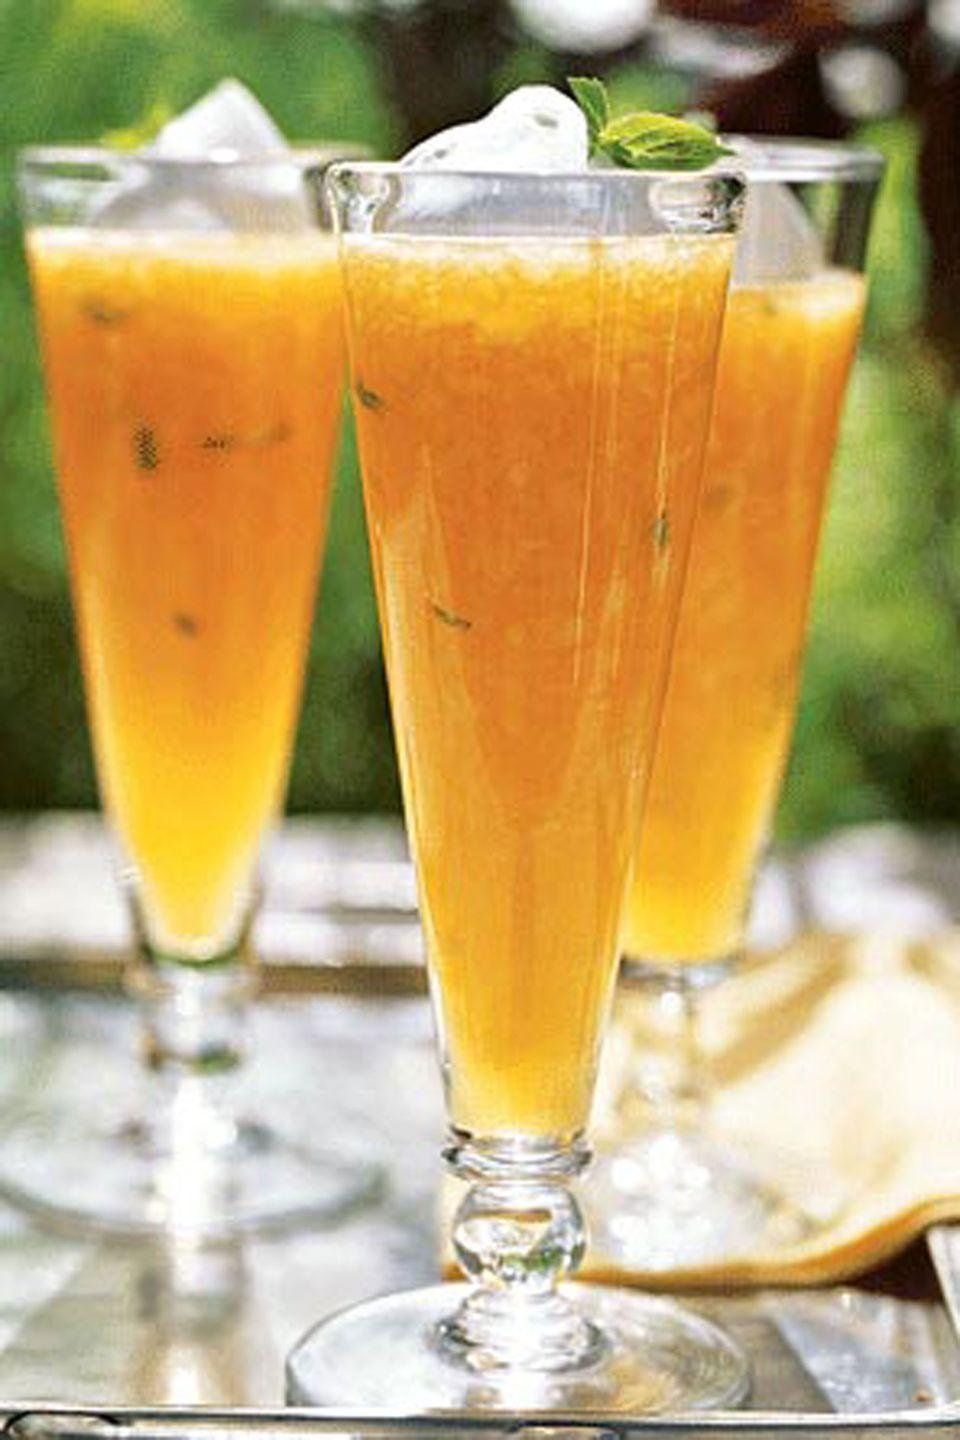 """<p>Our refreshing cantaloupe soup, inspired by chef Shawn Lawson, is a cool menu change. Instead of using traditional soup plates, try a mix of pilsner glasses and champagne flutes.</p><p><strong><a href=""""https://www.countryliving.com/food-drinks/recipes/a1130/cantaloupe-soup-basil-cream-3237/"""" rel=""""nofollow noopener"""" target=""""_blank"""" data-ylk=""""slk:Get the recipe"""" class=""""link rapid-noclick-resp"""">Get the recipe</a>.</strong></p><p><a class=""""link rapid-noclick-resp"""" href=""""https://www.amazon.com/Cuisinart-DFP-14CPYAMZ-Food-Processor/dp/B07XJ8FCXH?tag=syn-yahoo-20&ascsubtag=%5Bartid%7C10050.g.850%5Bsrc%7Cyahoo-us"""" rel=""""nofollow noopener"""" target=""""_blank"""" data-ylk=""""slk:SHOP FOOD PROCESSORS"""">SHOP FOOD PROCESSORS</a></p>"""